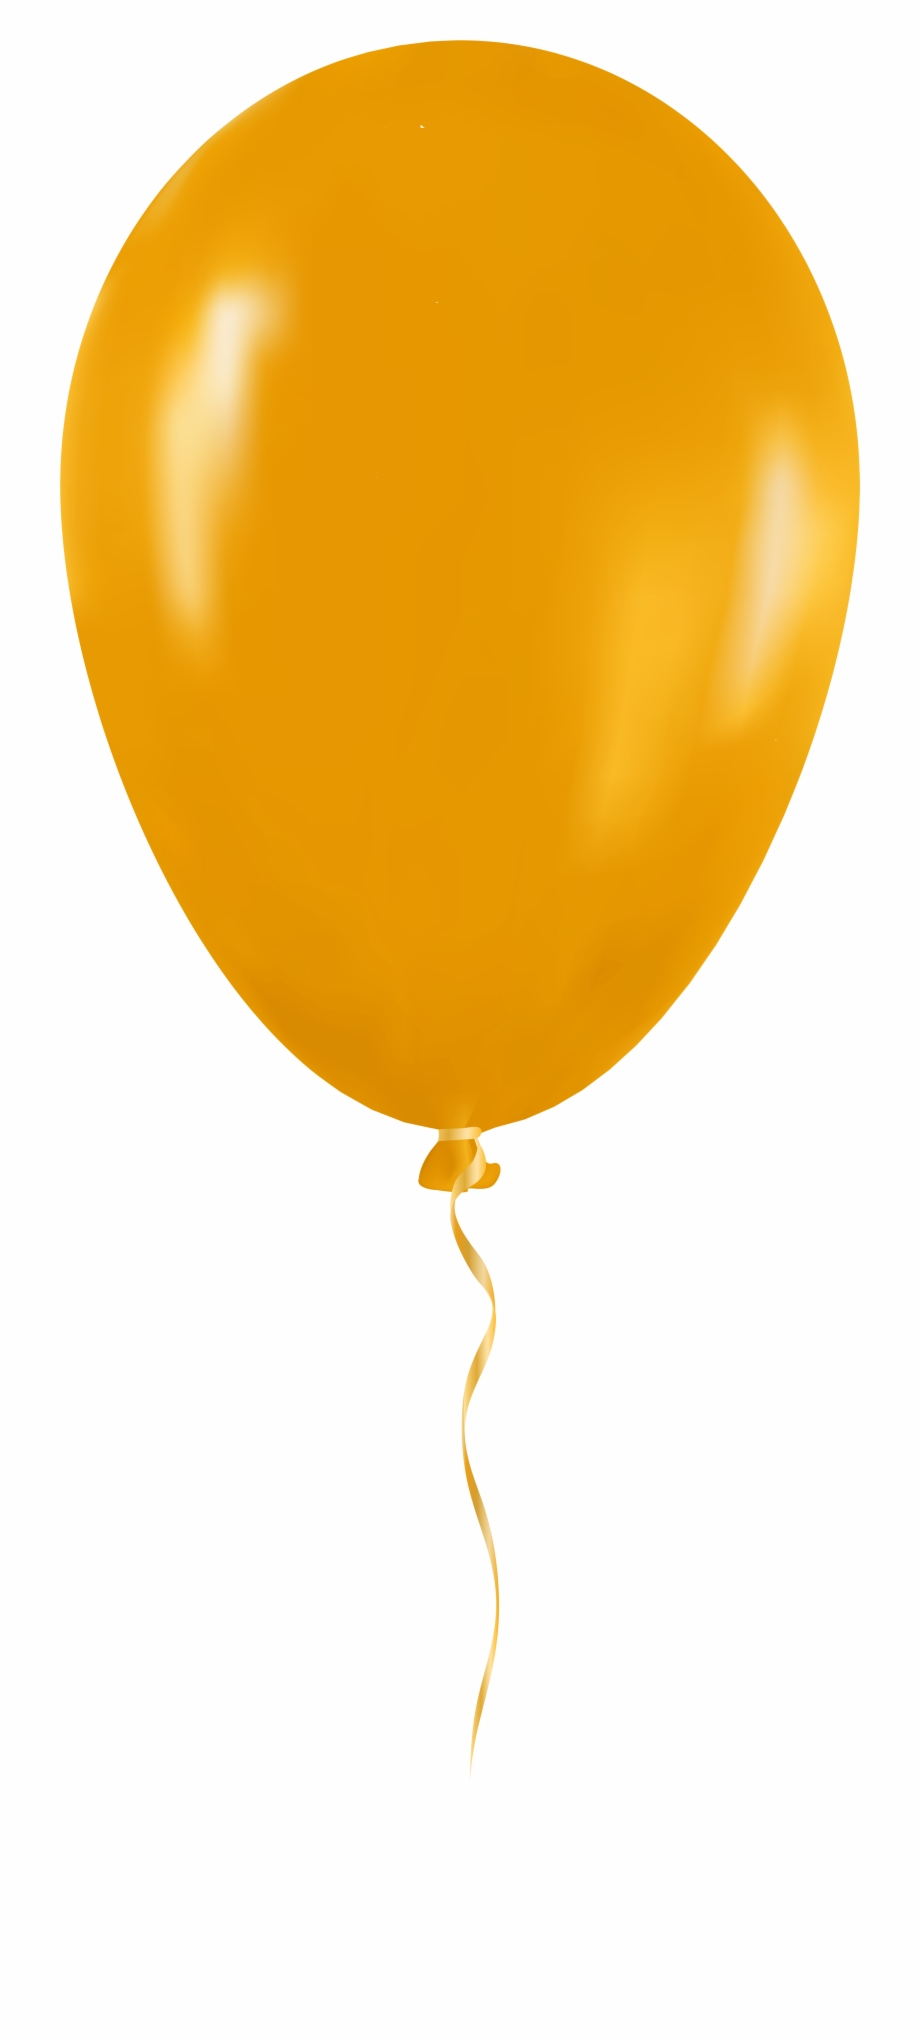 Yellow png clip art. Clipart balloon transparent background